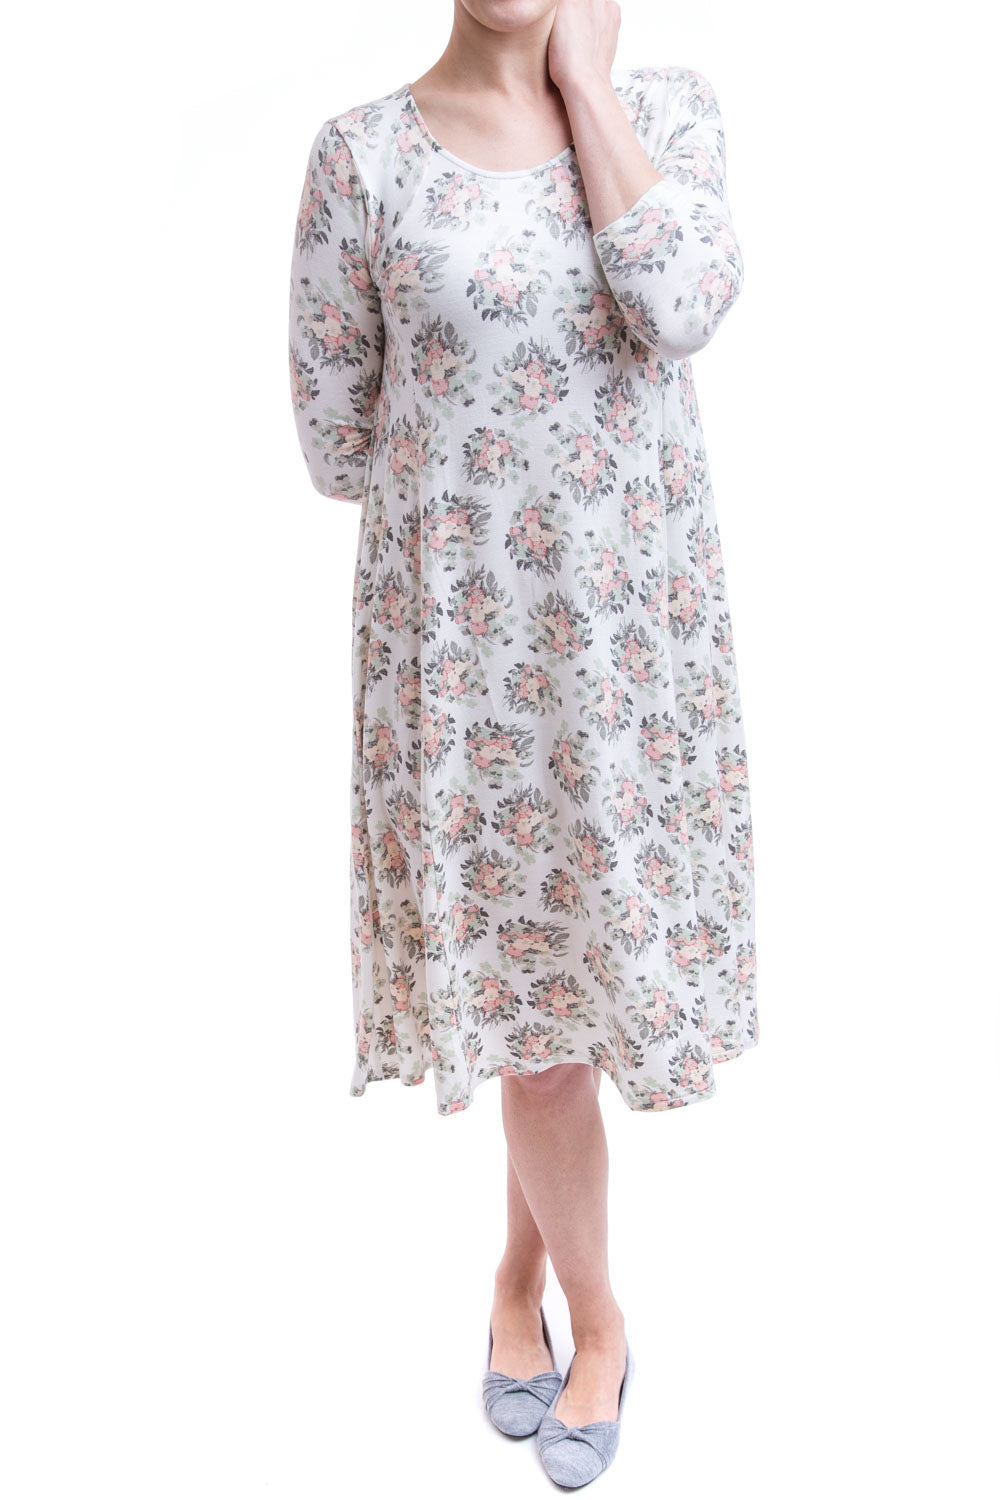 Type 2 About Town Dress In Flower Garden